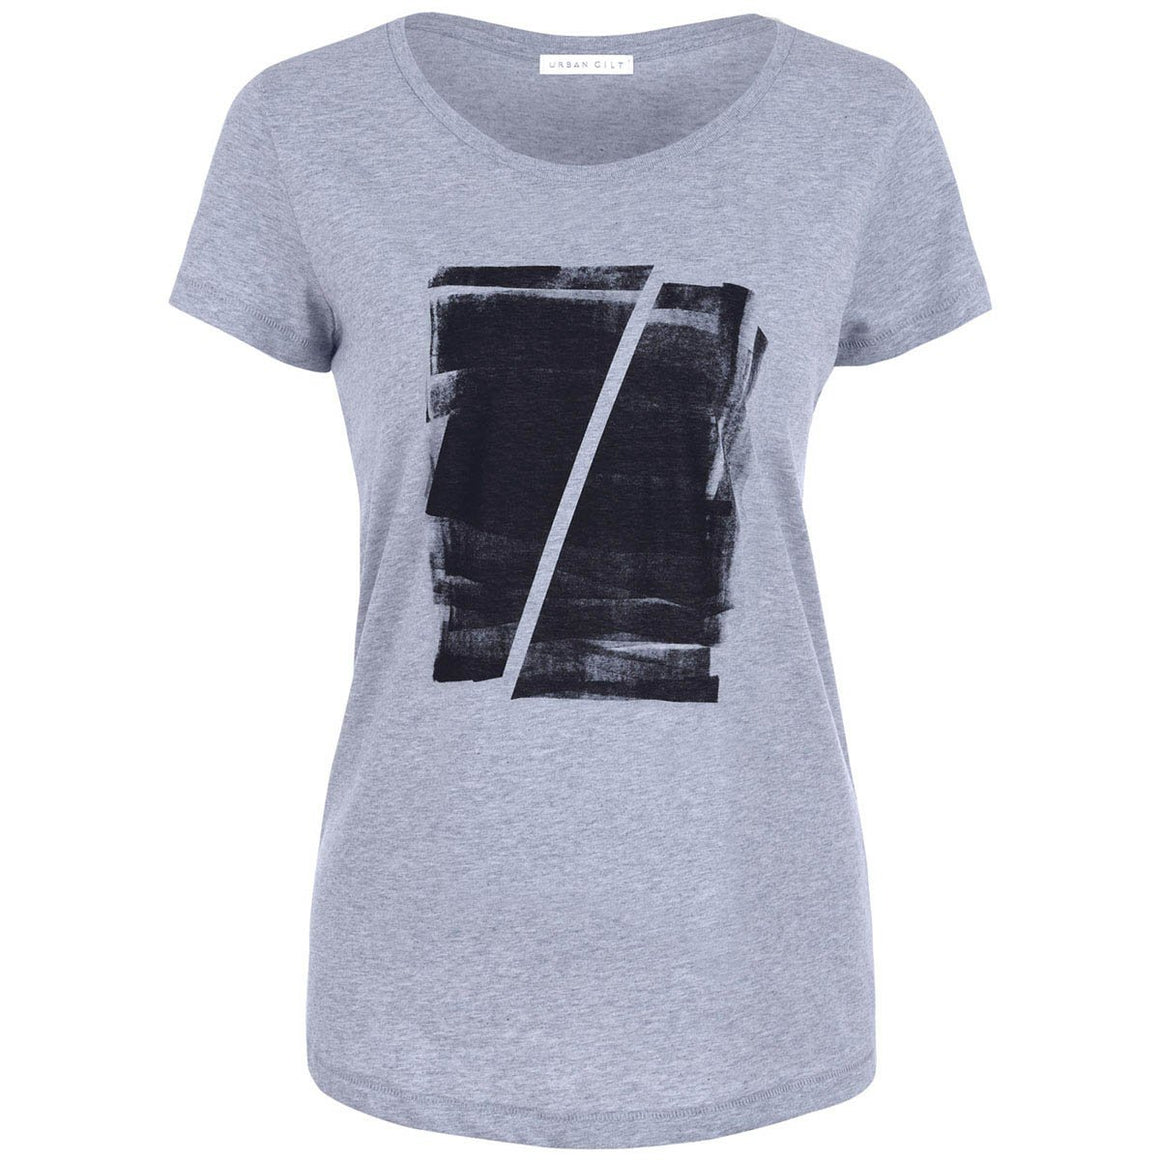 Maddox Grey Abstract Print T-shirt Front View